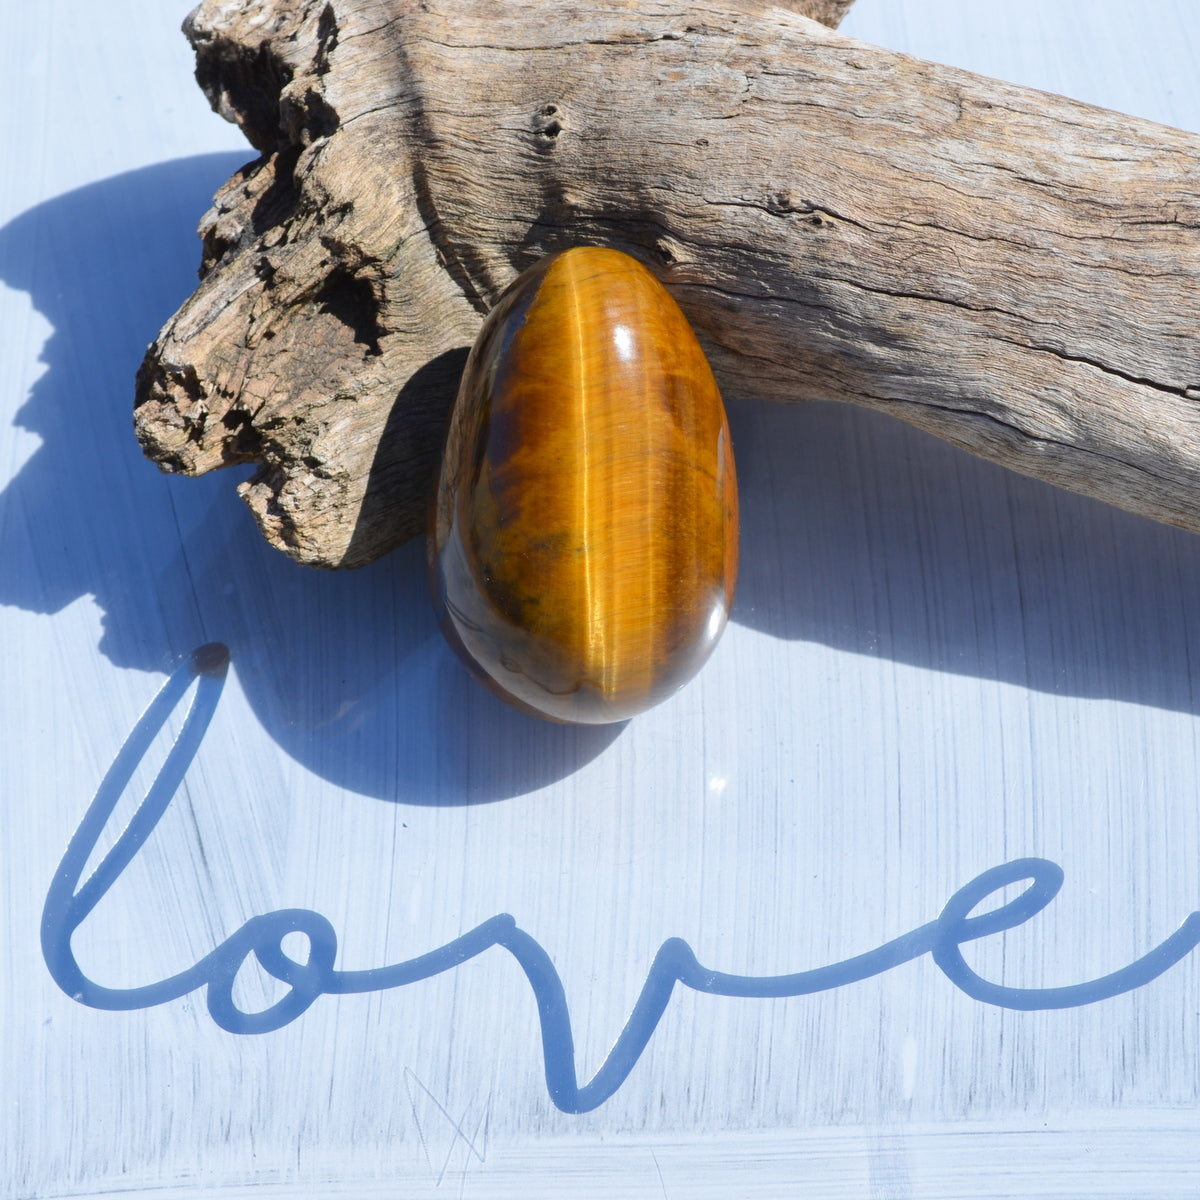 Tiger Eye Large Gemstone Egg - Strength Courage Optimism - Shop Now at Illiom Crystals - Now with Afterpay